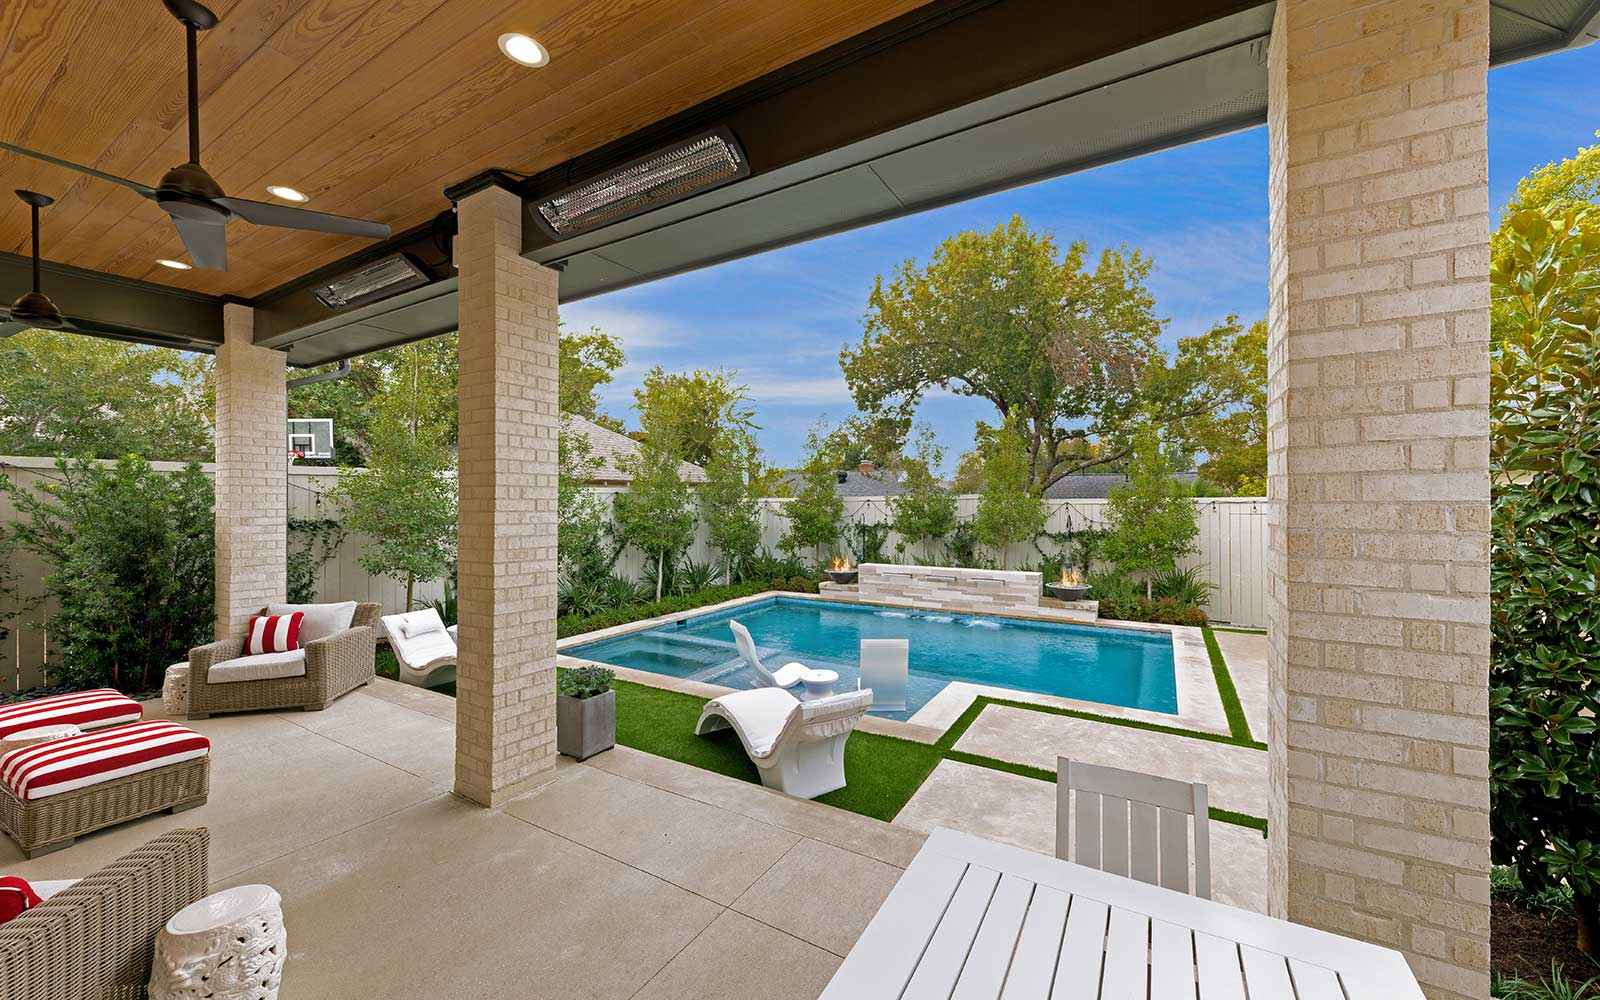 ddla-design-lakewood-dallasrear-porch-view-to-pool.jpg